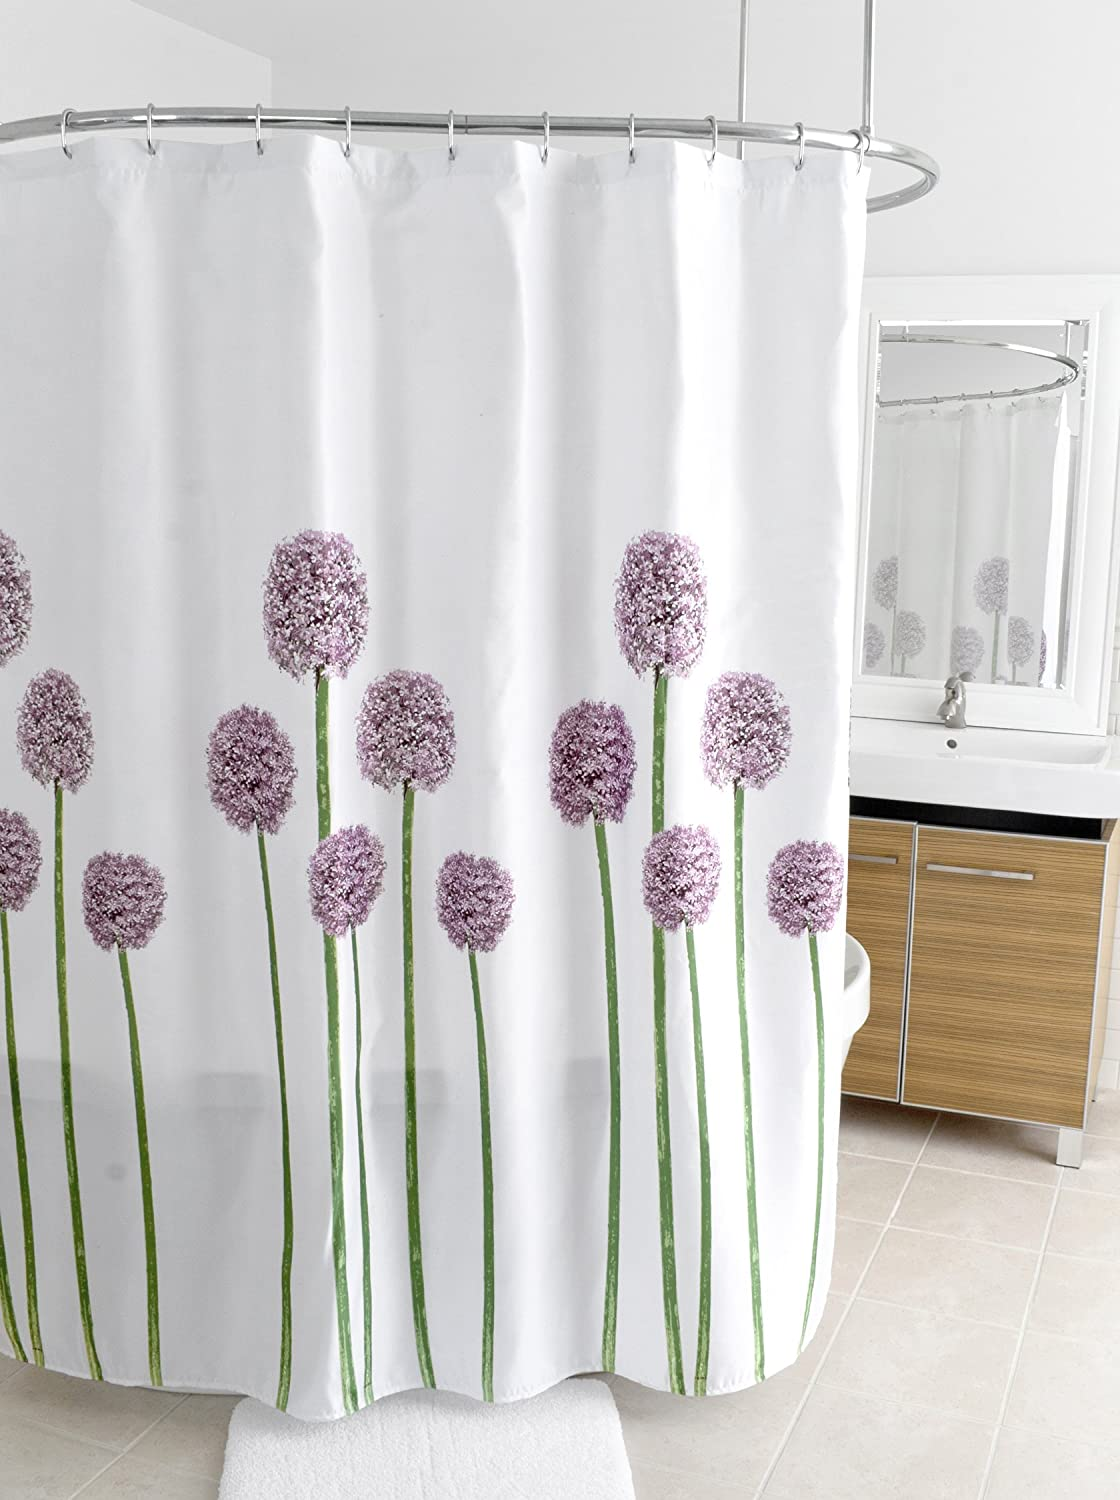 amazoncom splash home shower curtain  by inch allium home kitchen. amazoncom splash home shower curtain  by inch allium